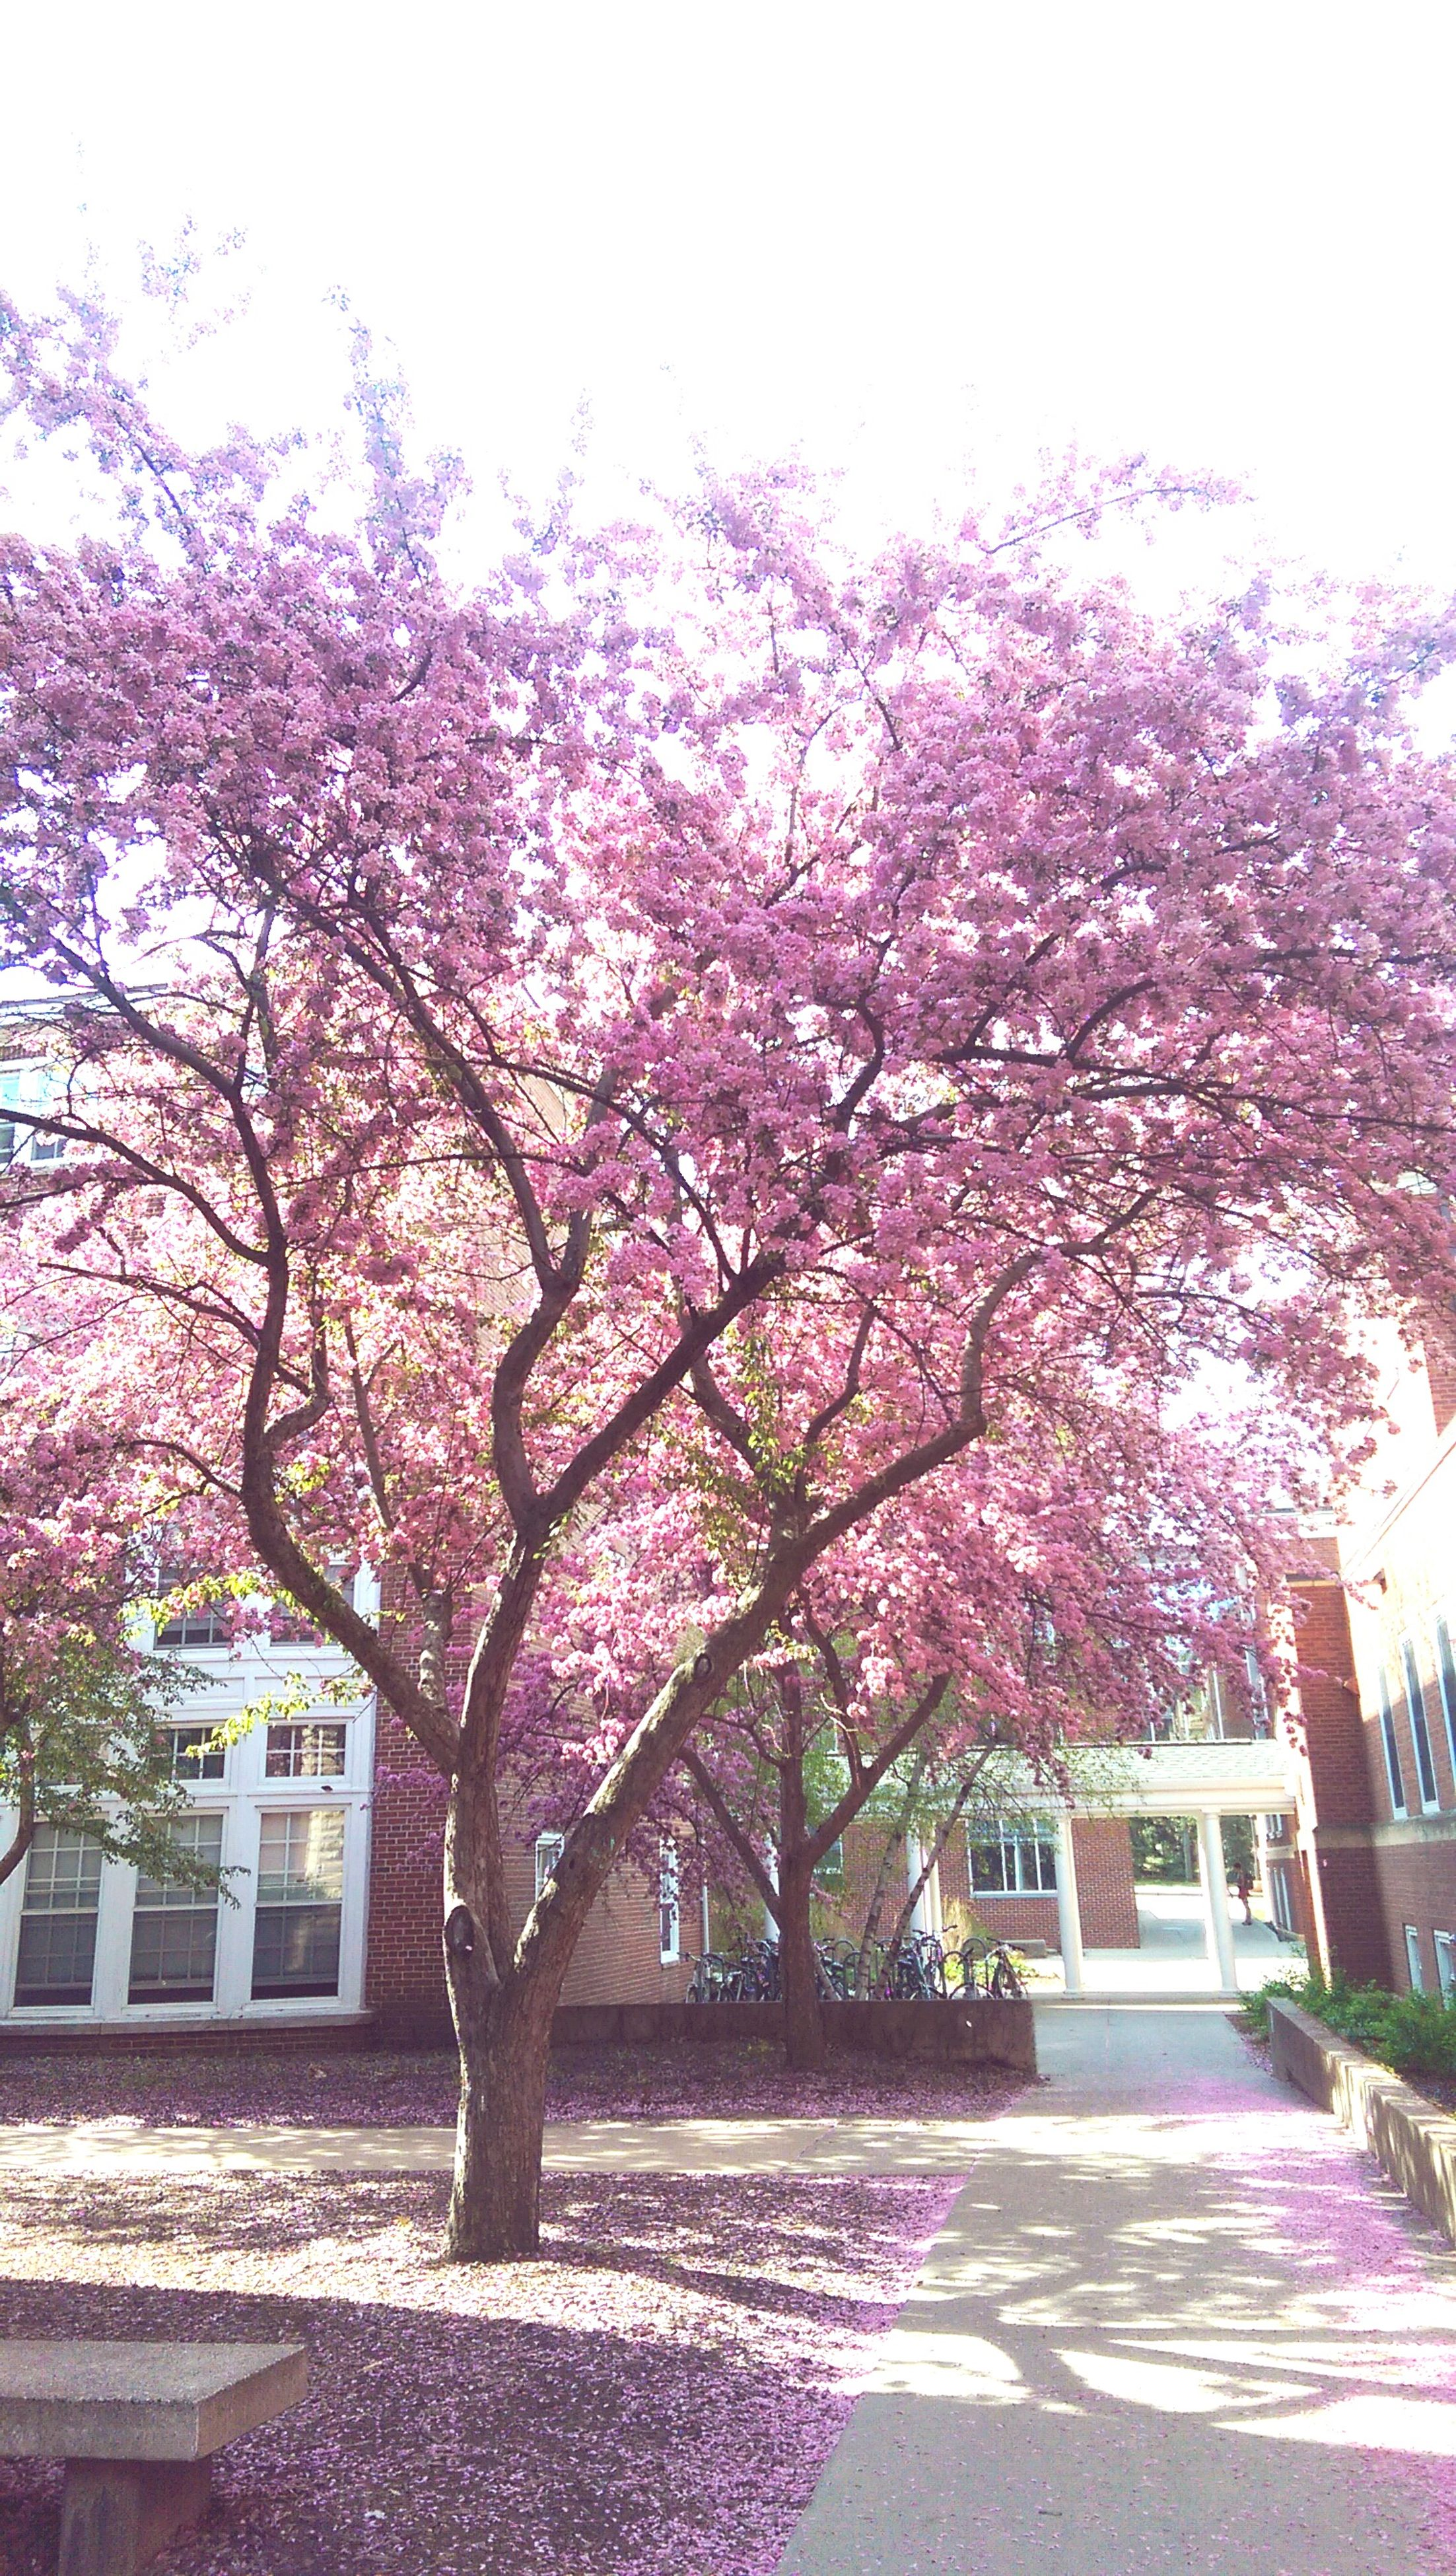 flower, tree, growth, branch, freshness, built structure, building exterior, architecture, pink color, park - man made space, blossom, nature, fragility, beauty in nature, cherry blossom, in bloom, clear sky, cherry tree, day, sunlight